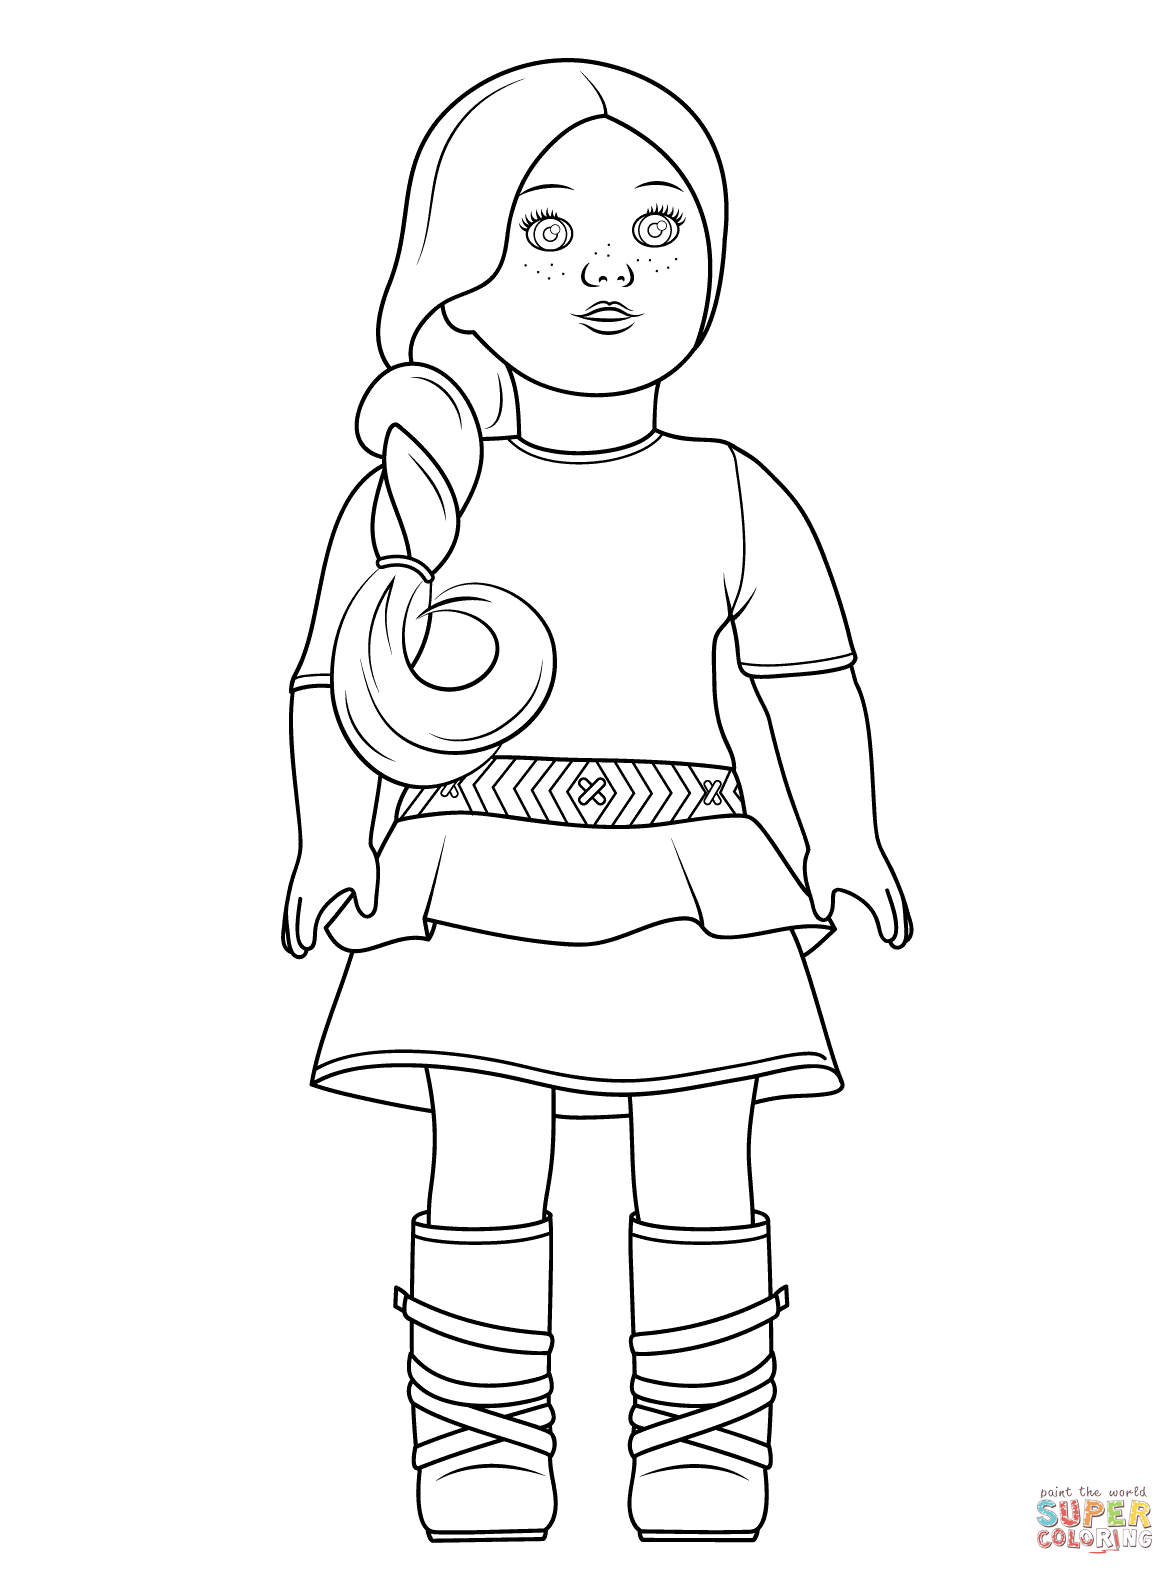 Sheets American Girl Doll Coloring Page 39 In Coloring Pages